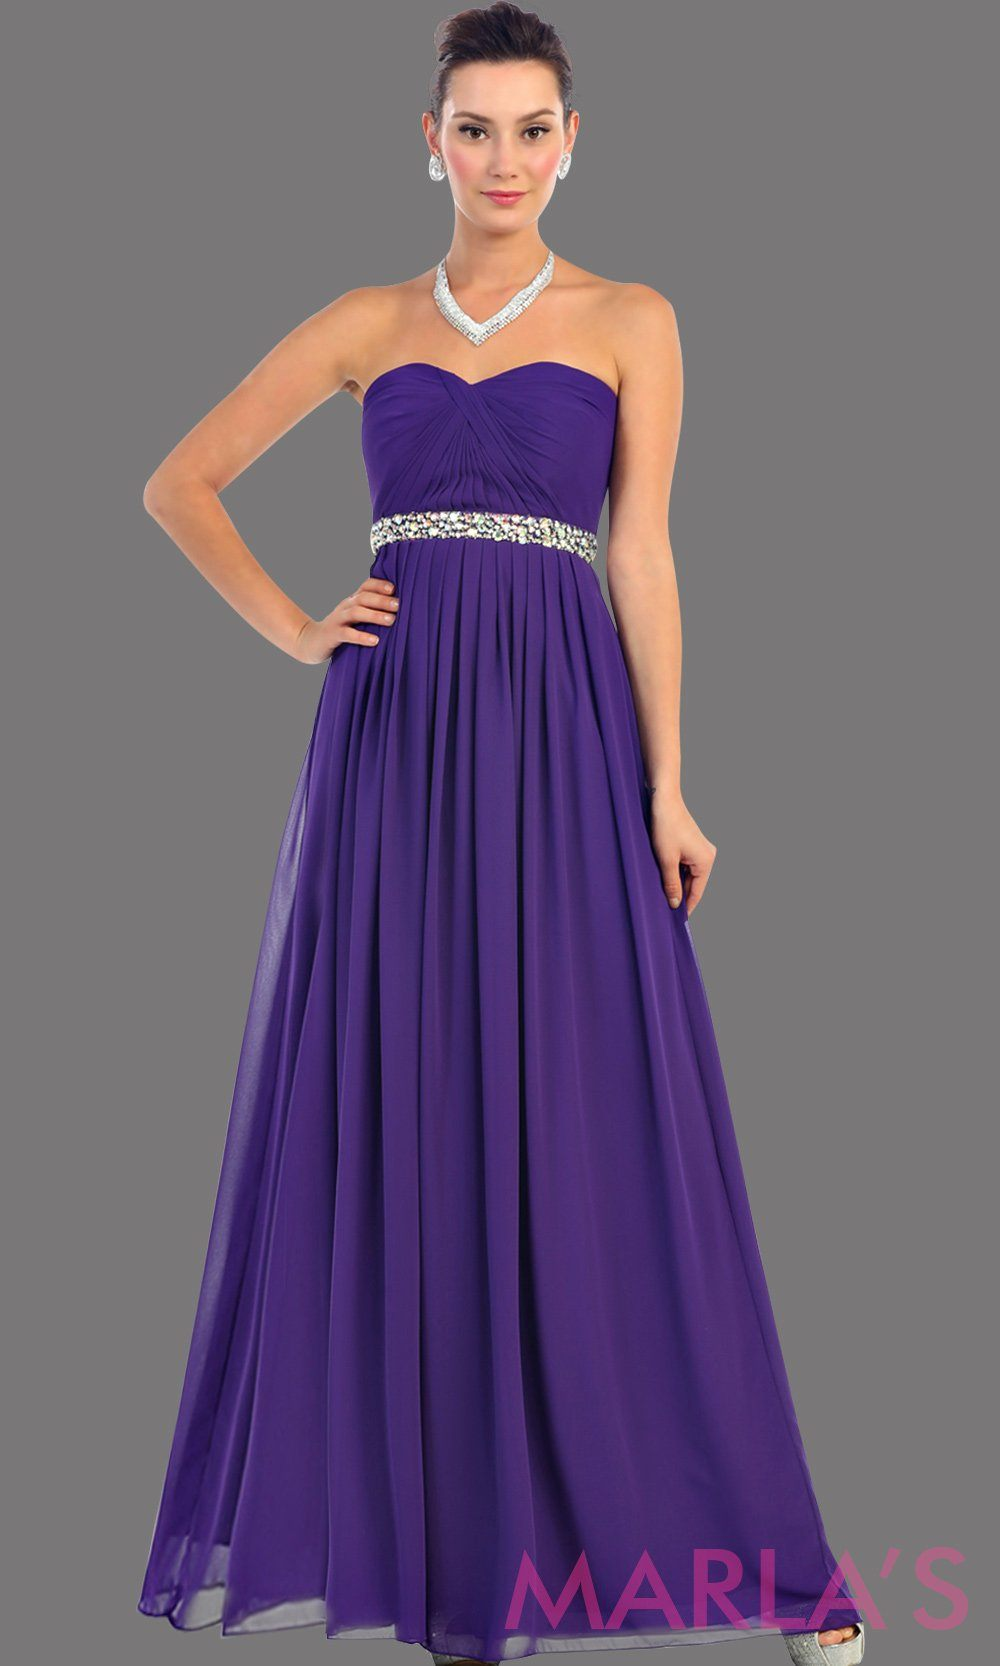 Multi Coloured Bridesmaid Dress Image collections - Braidsmaid Dress ...